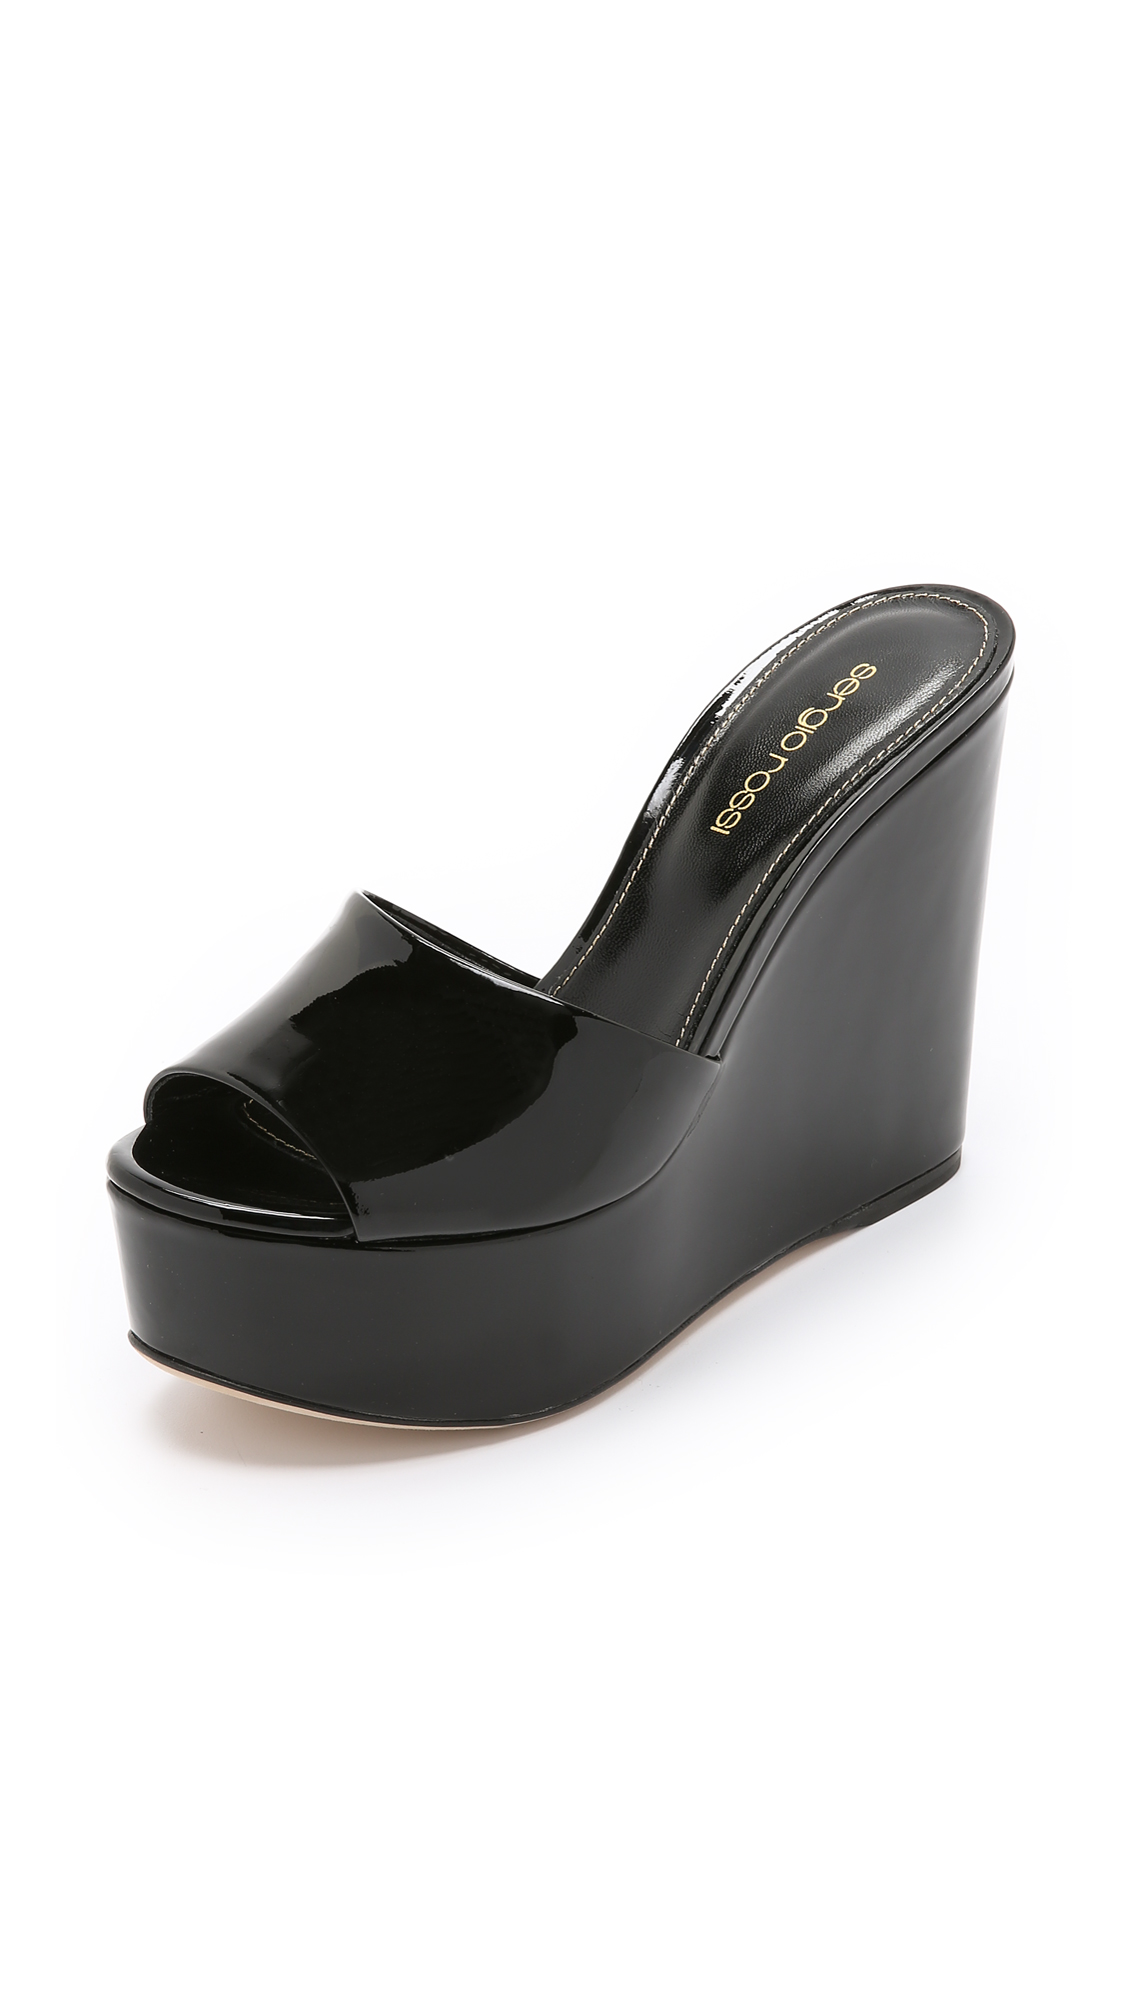 Sergio Rossi 120Mm Lakeesha Patent Leather Wedges, Black